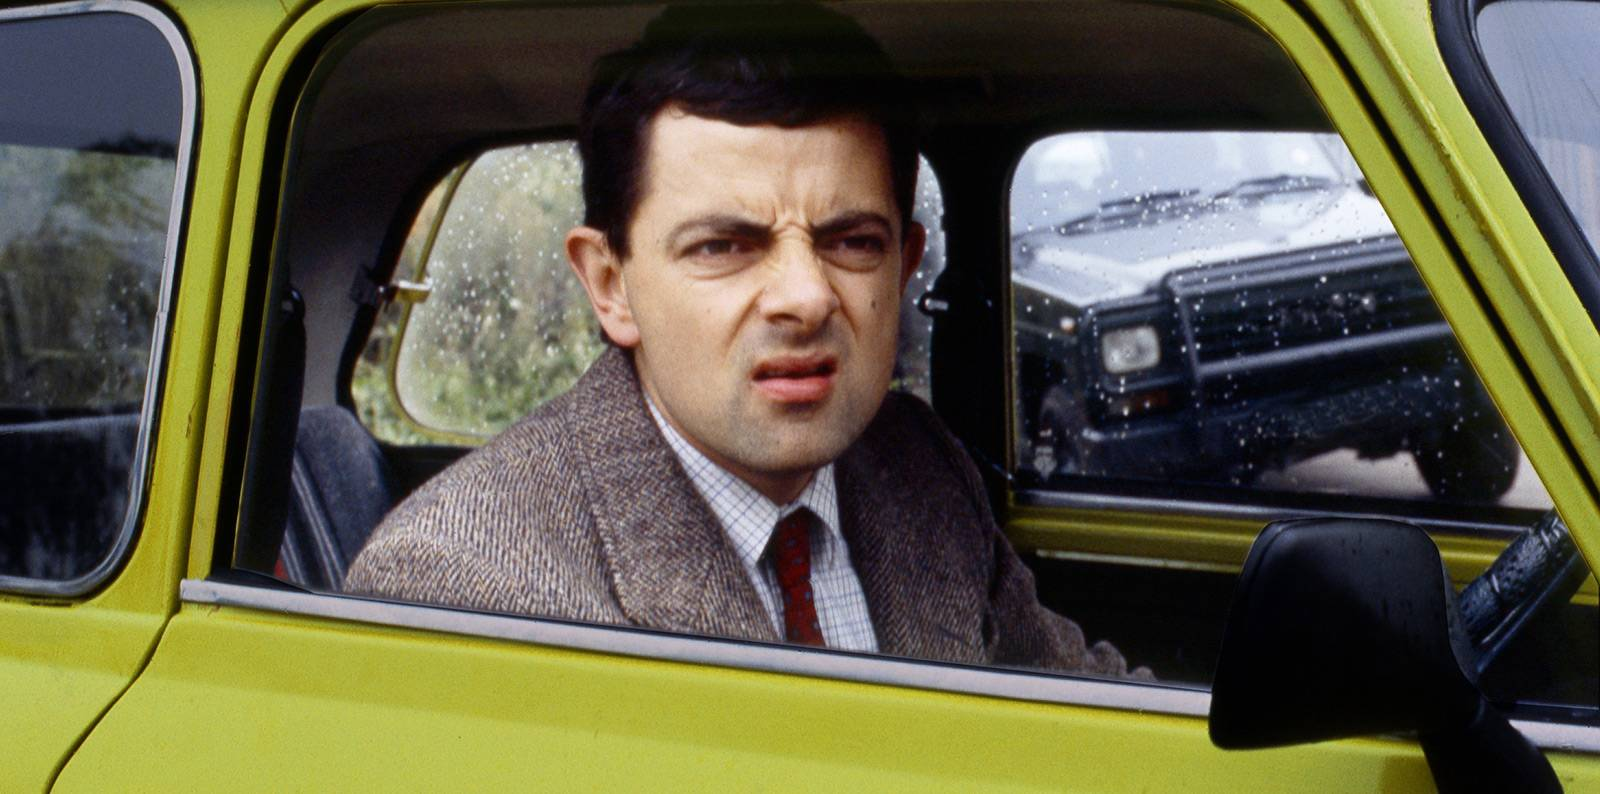 Picture of Mr. Bean in his car